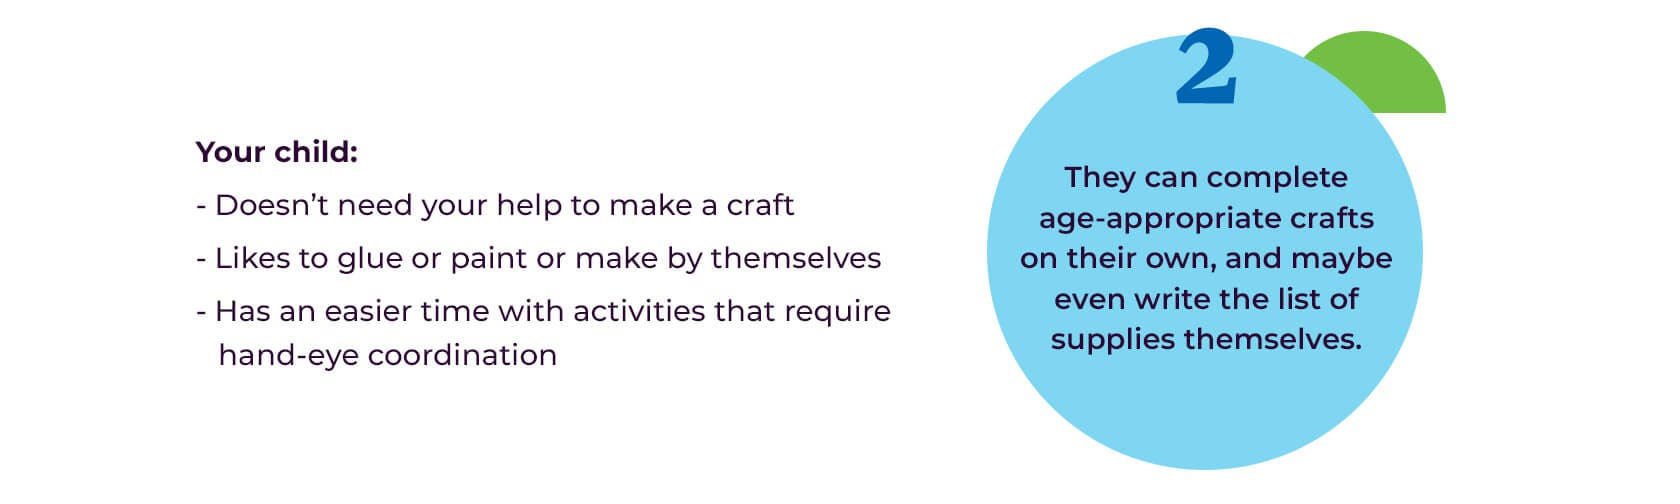 2. They can complete age-appropriate crafts on their own, and maybe even write the list of supplies themselves.